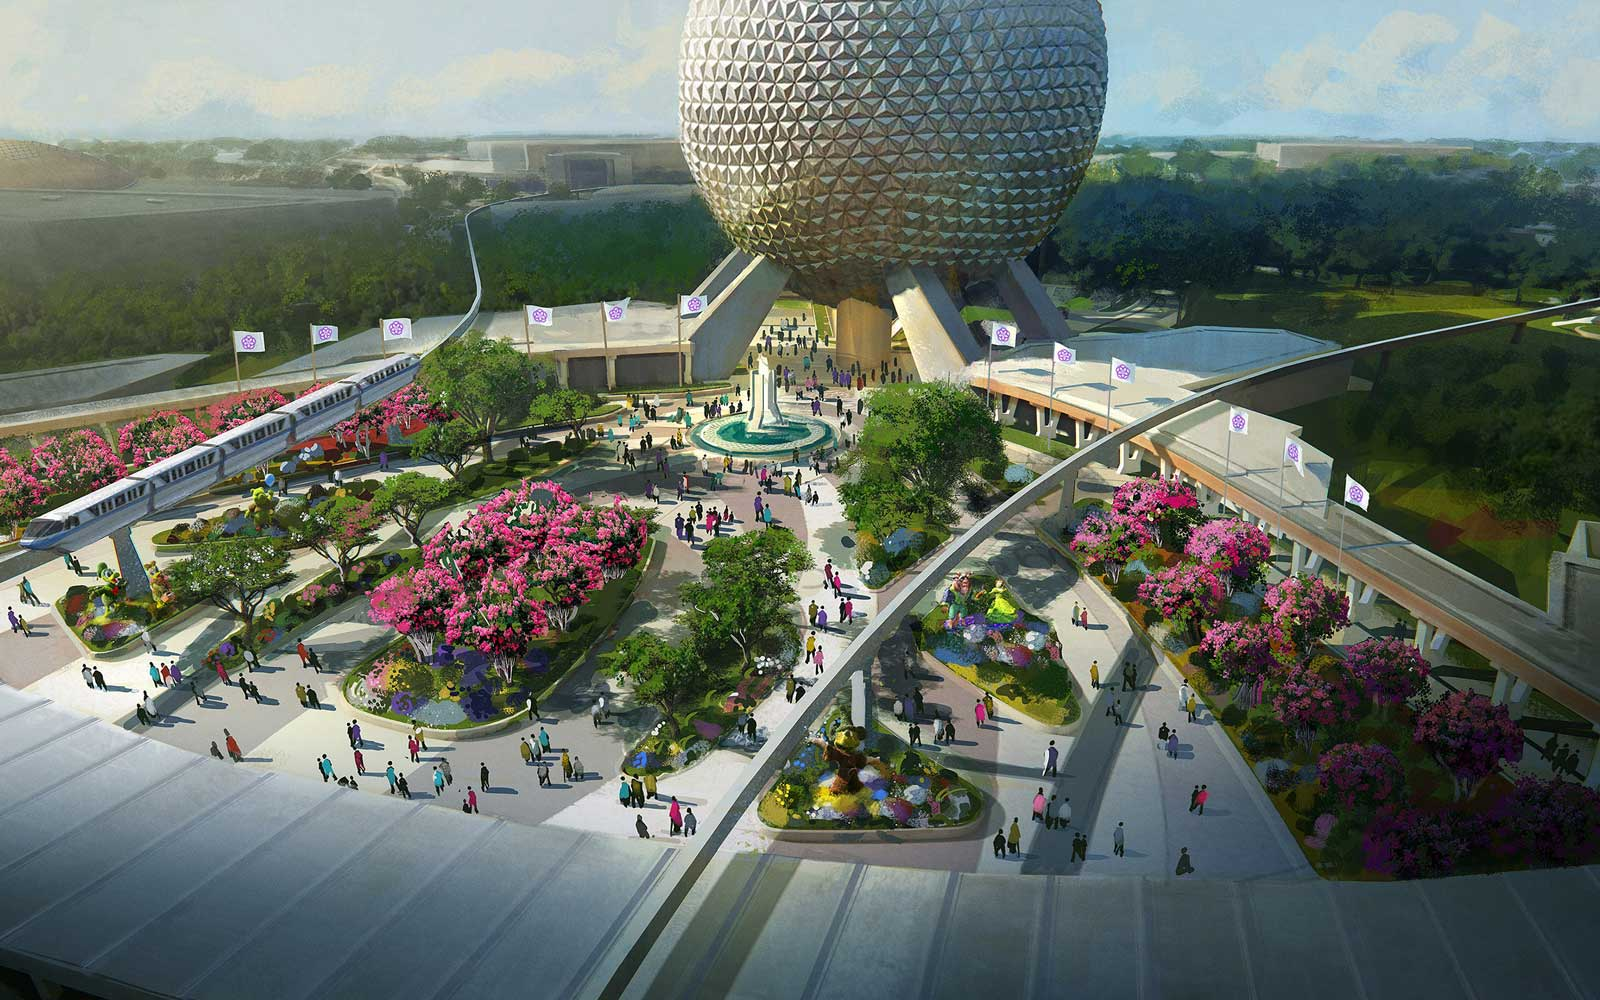 Birdseye view rendering of the new play pavilion at Disney